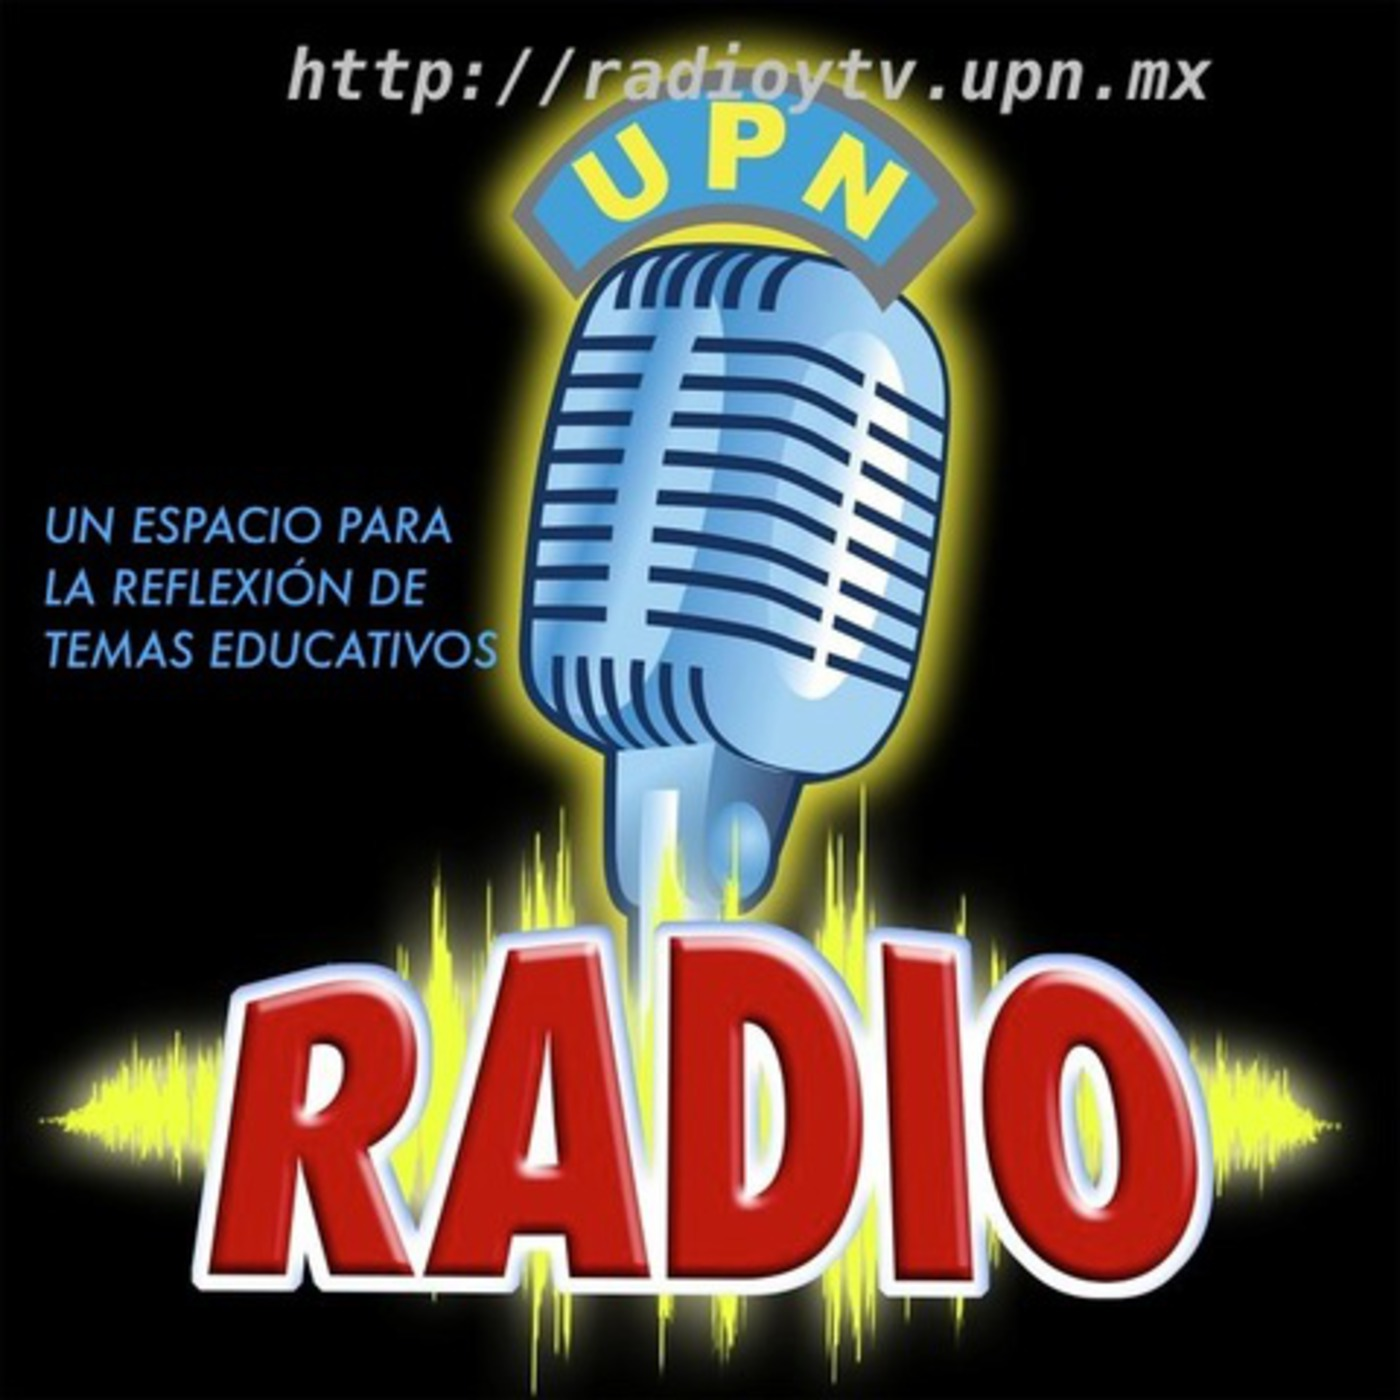 AUTORES UPN's Podcast